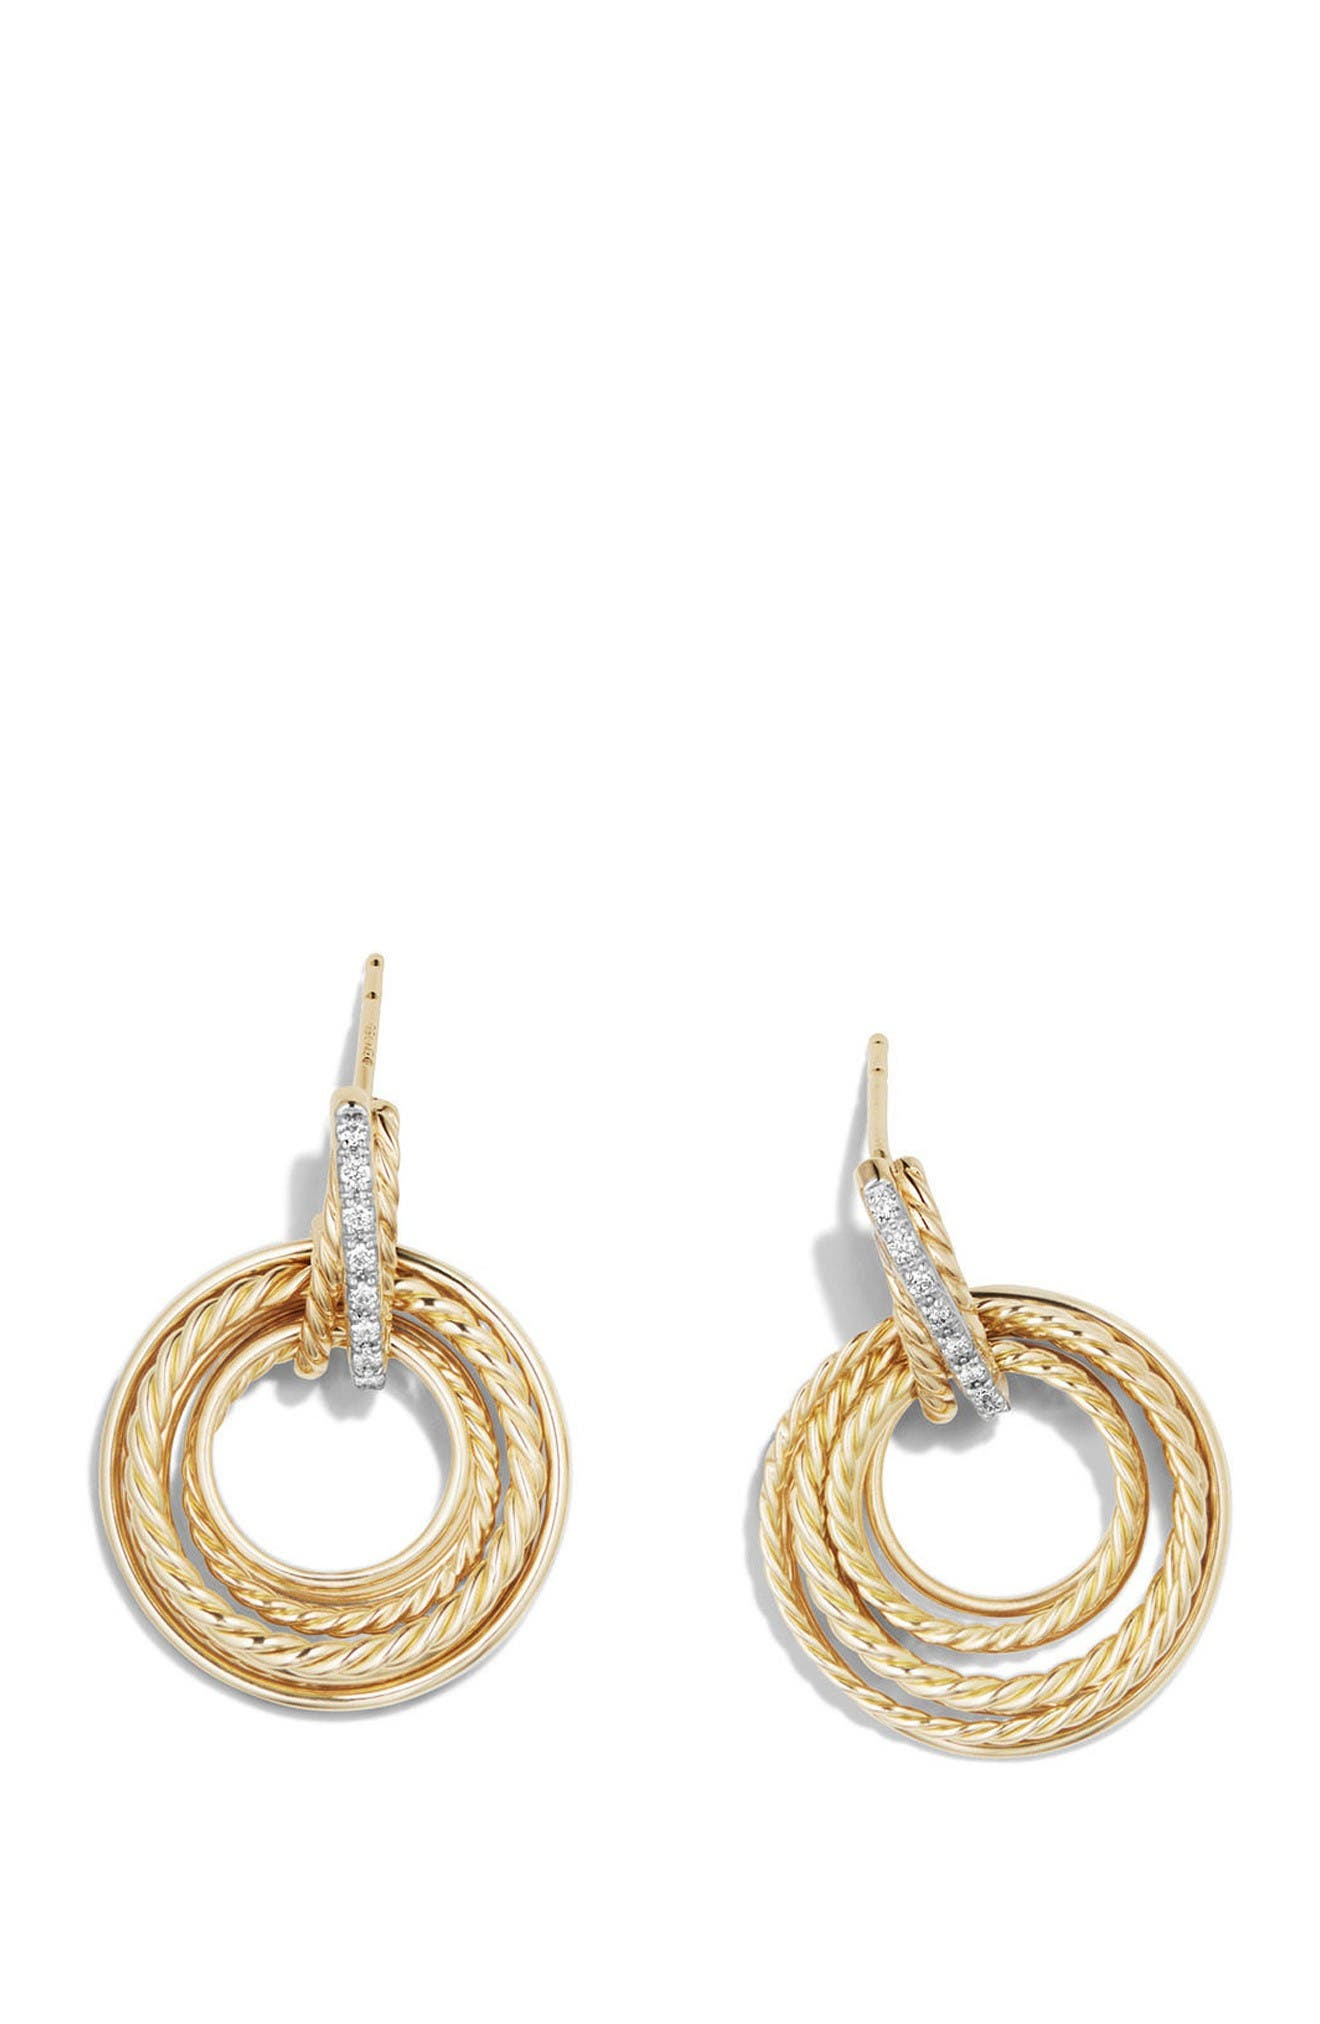 Crossover Diamond Drop Earrings,                             Alternate thumbnail 2, color,                             Yellow Gold/ Diamond